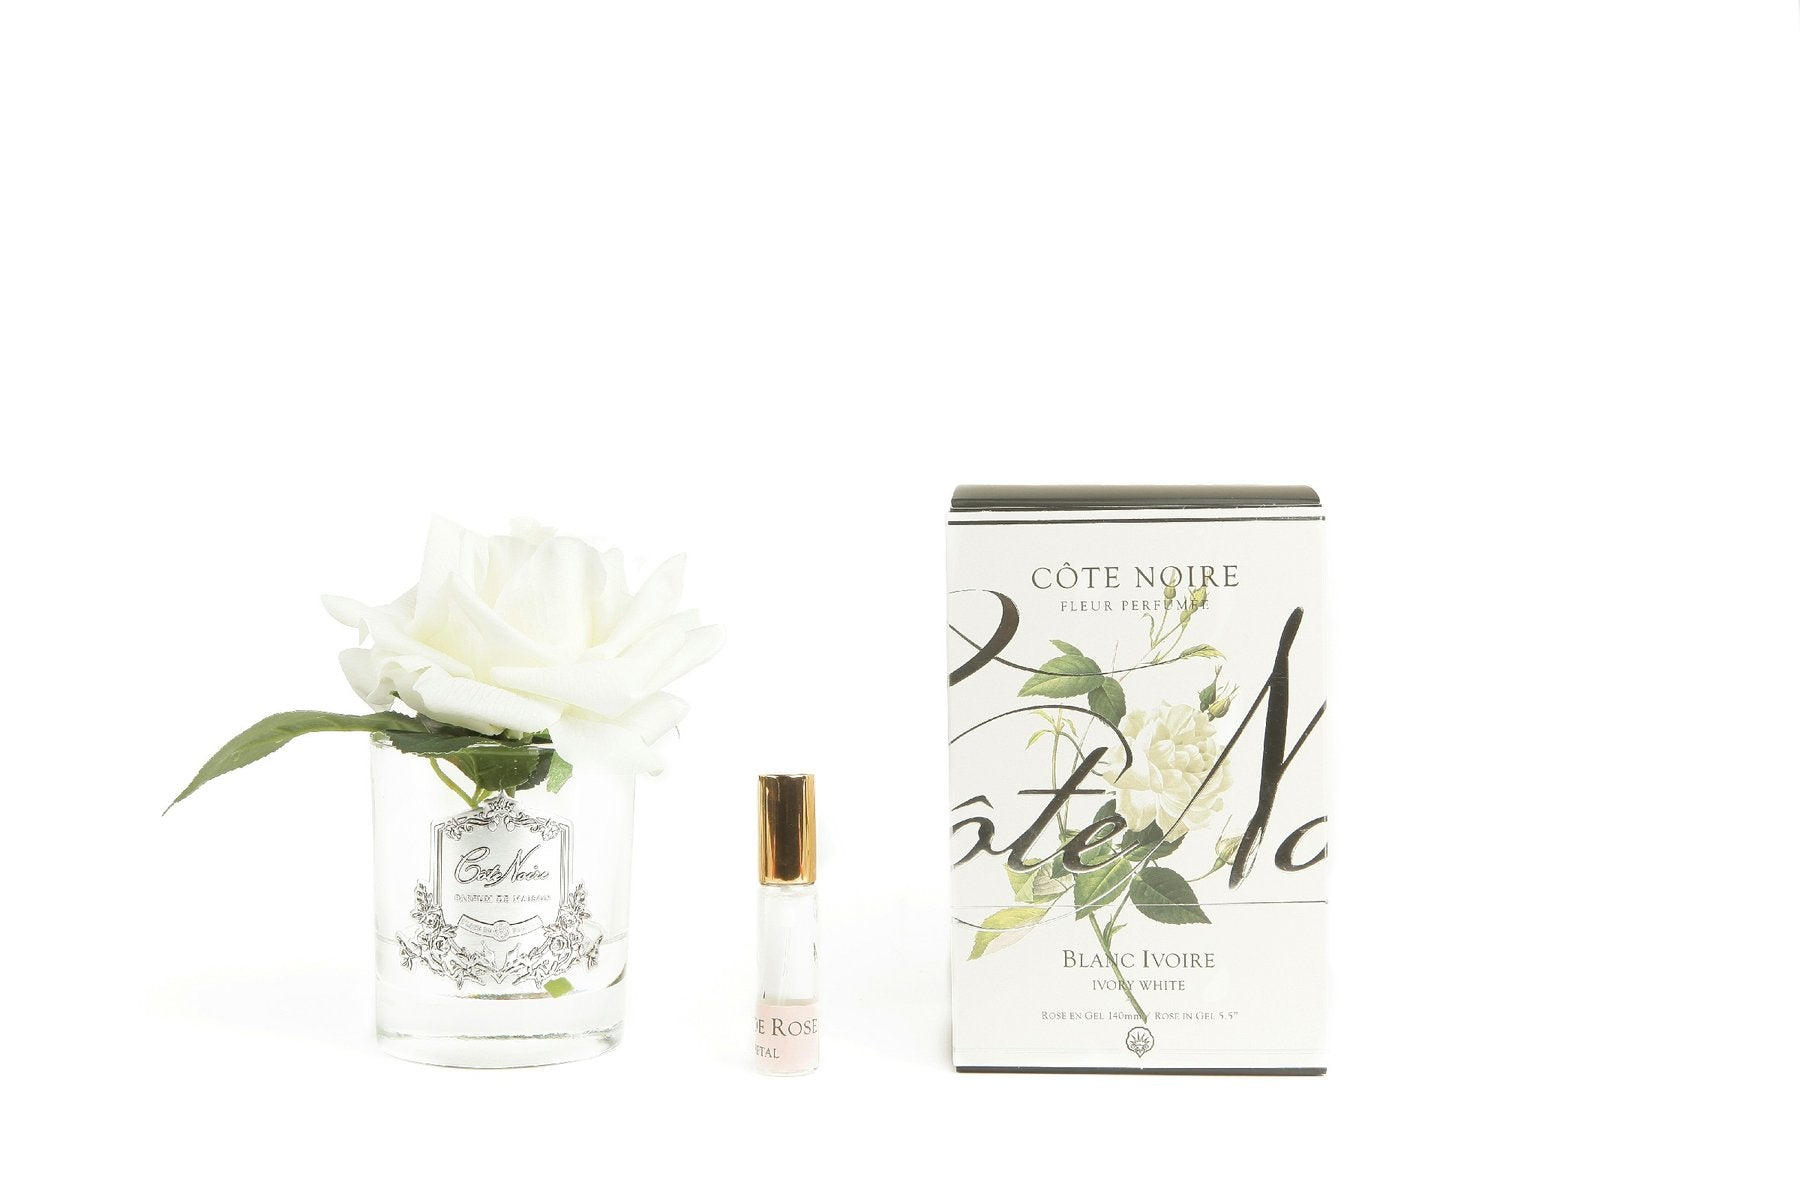 COTE NOIR Single White Rose in Clear Vase